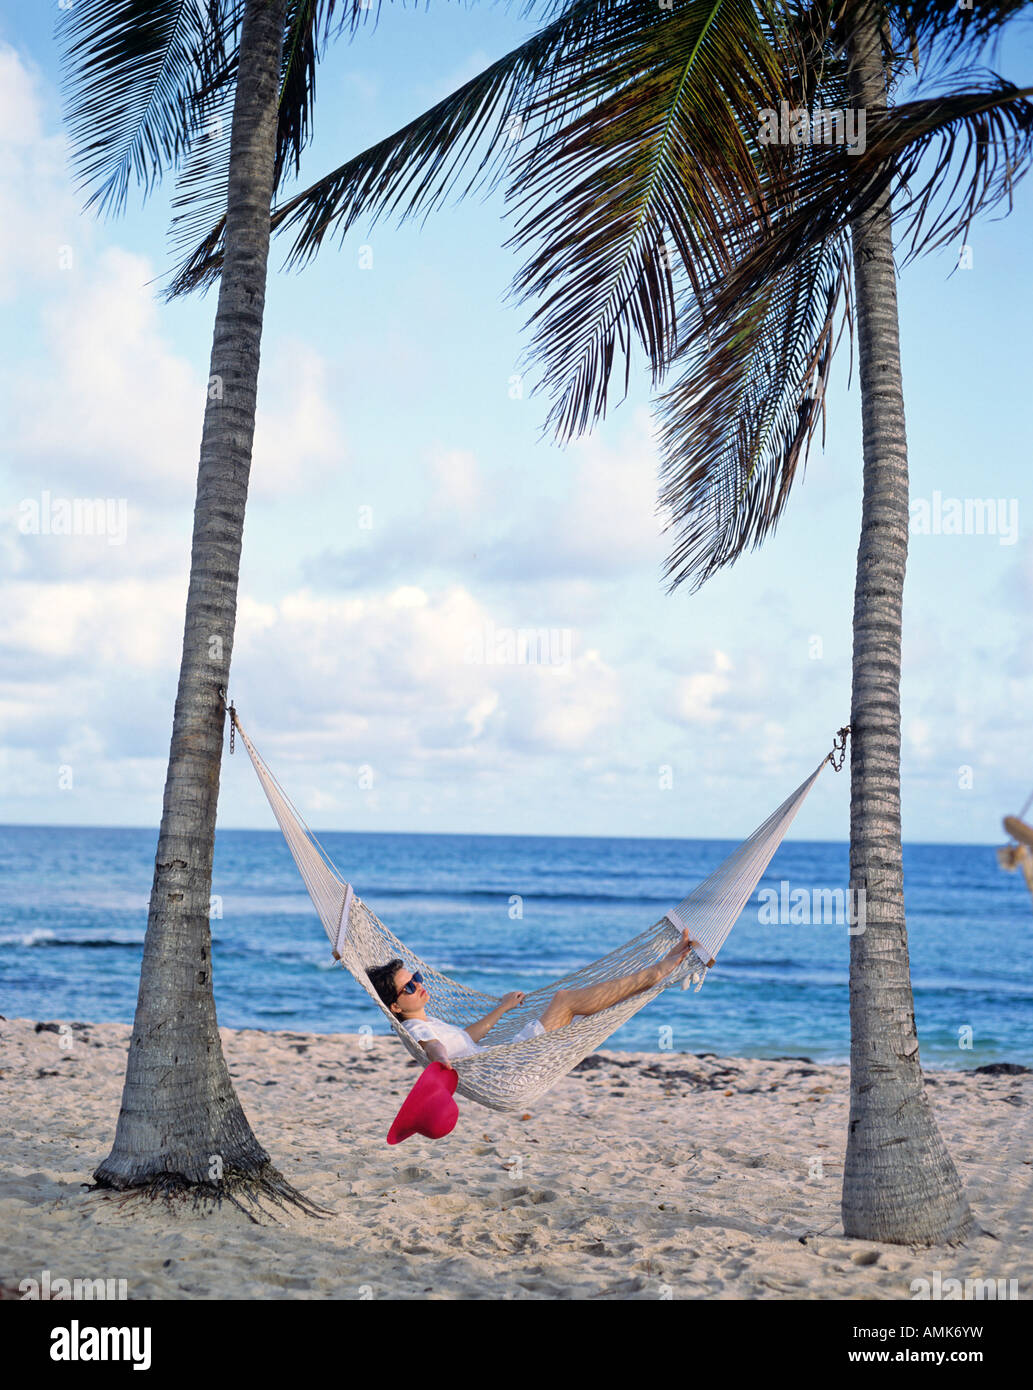 Woman At Beach Under Palm Tree Stock Image - Image of palm